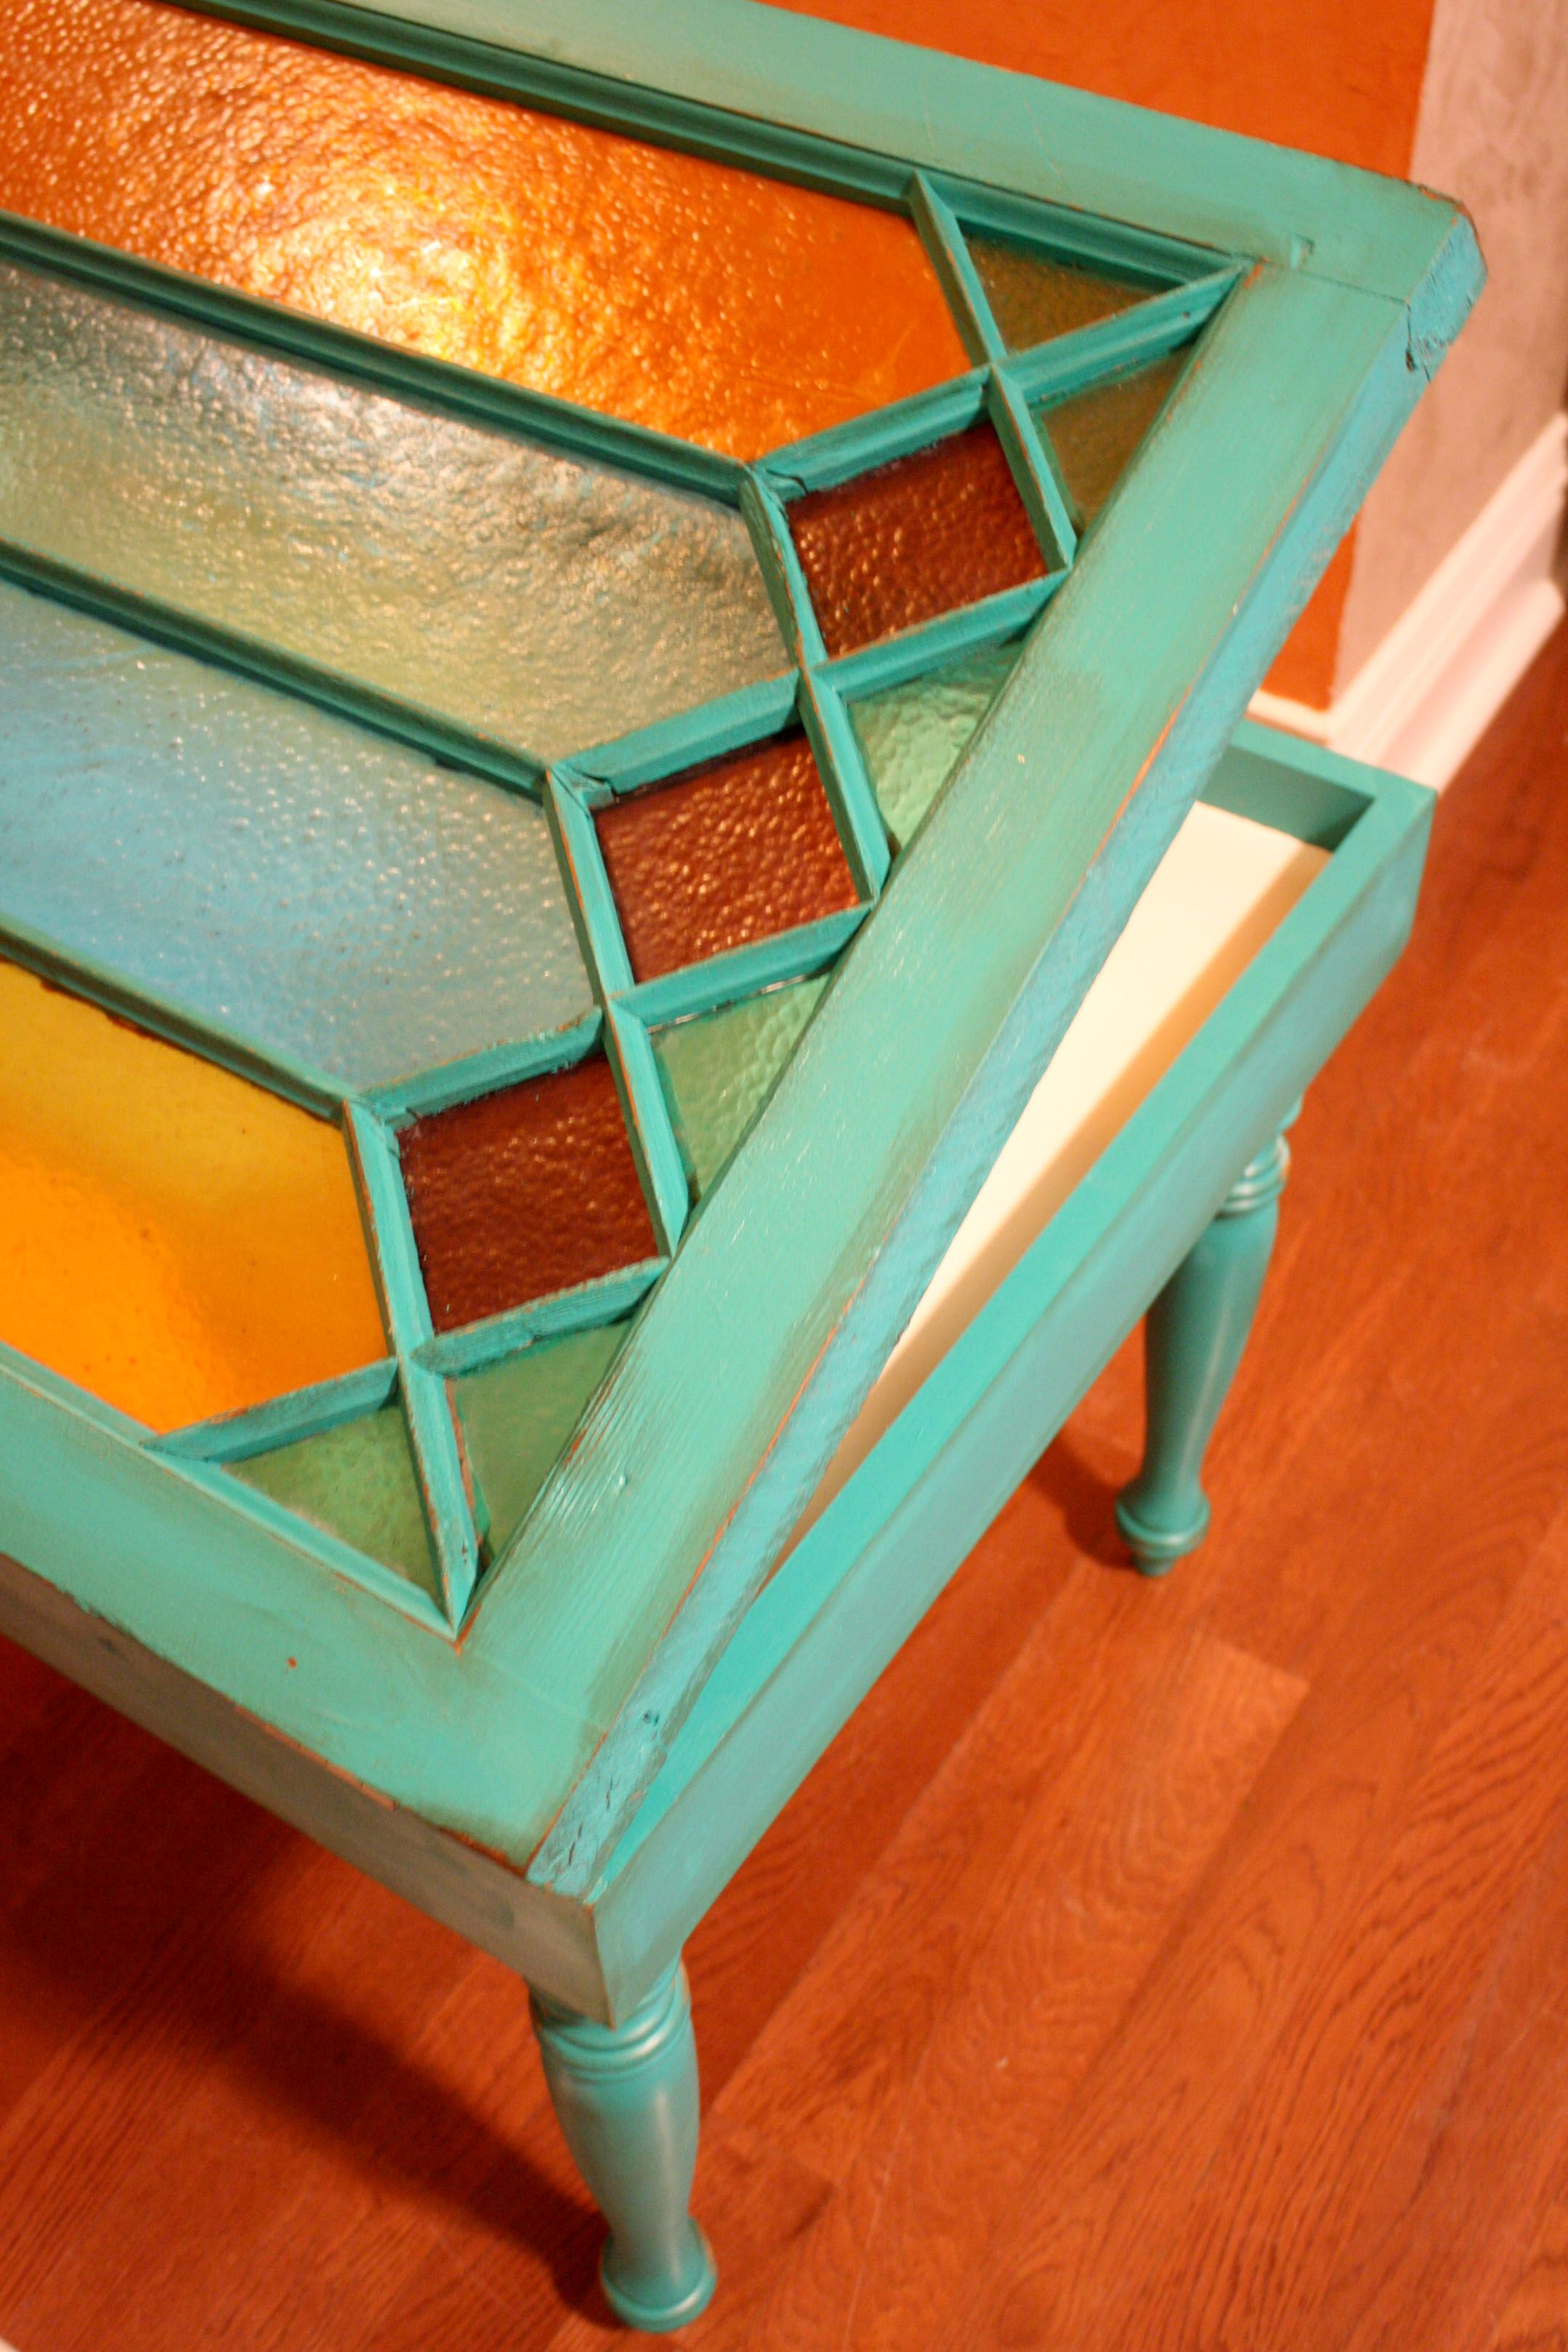 Table made from old drawers and windows by Gypsy Alley Girls